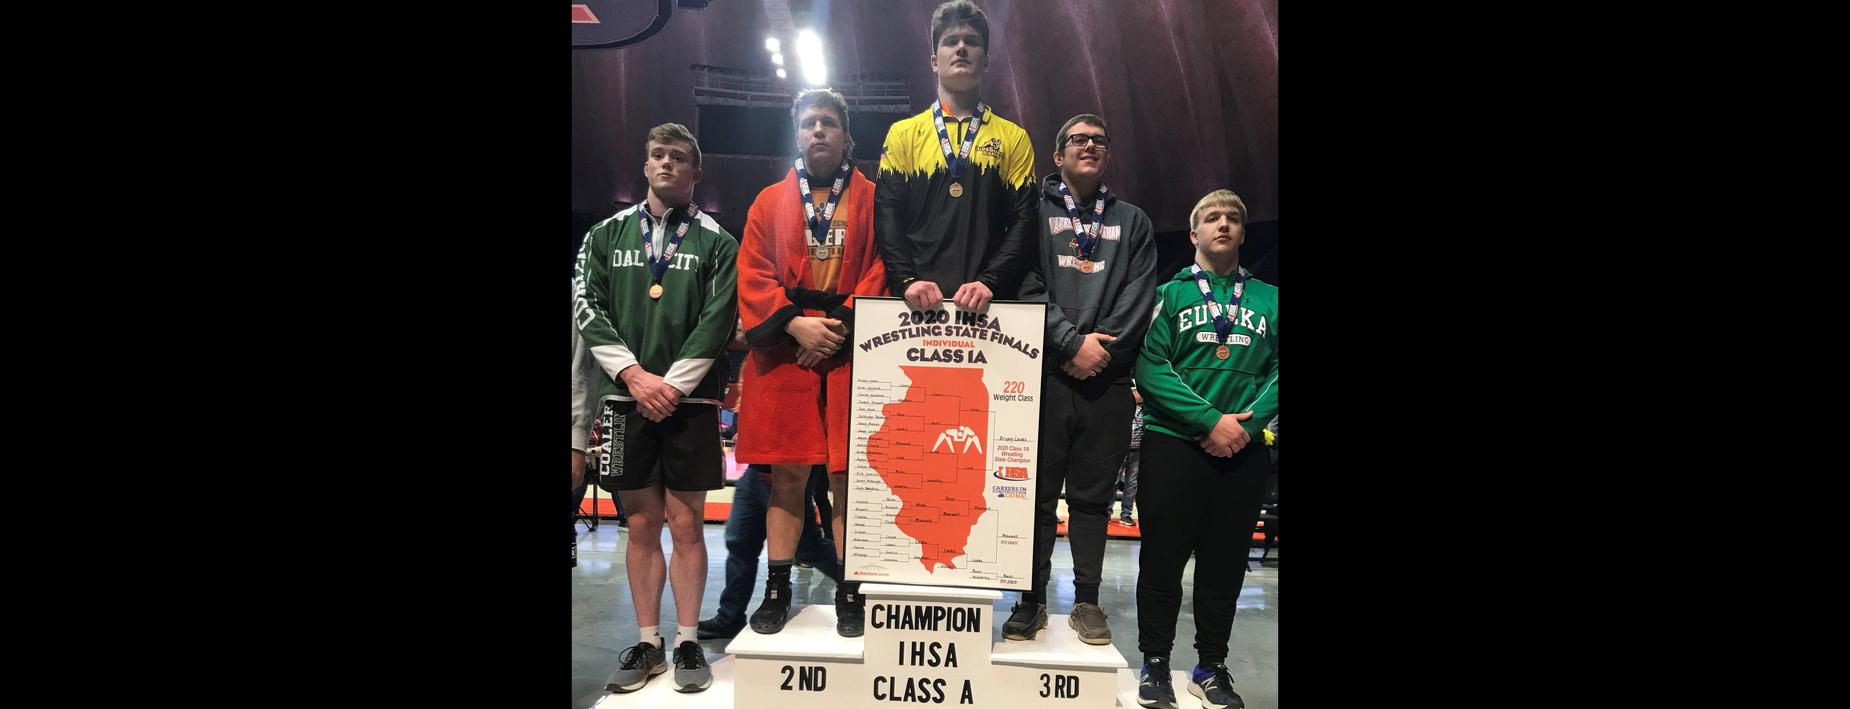 4th place finisher - individual wrestling state